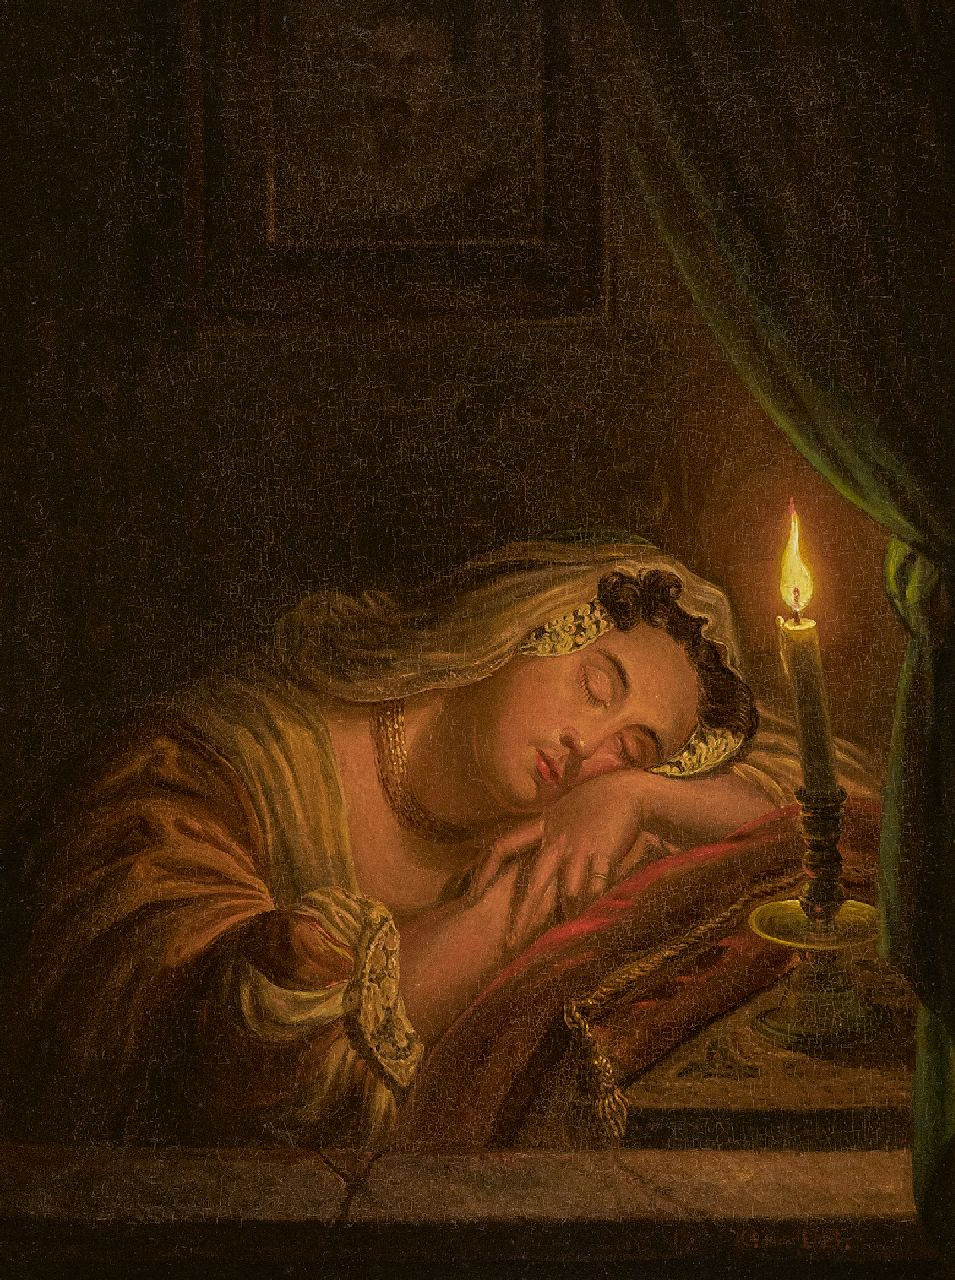 Willem Thans | Sleeping woman by candle light, oil on panel, 25.6 x 20.2 cm, signed l.r. and dated 1845